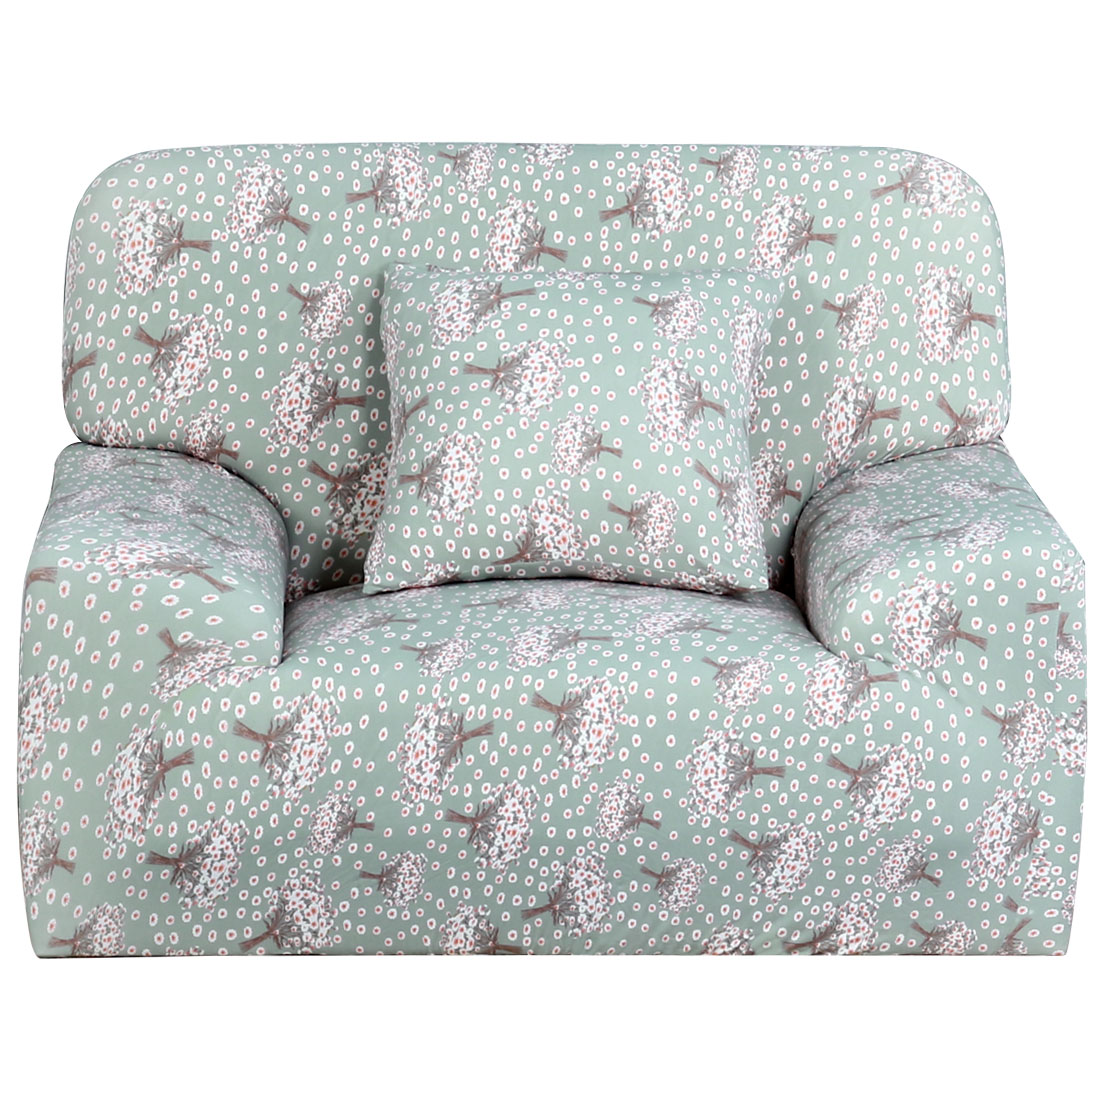 Household Polyester Hyacinth Prints Elastic Sofa Chair Cover Slipcover Protector 35-55 Inch